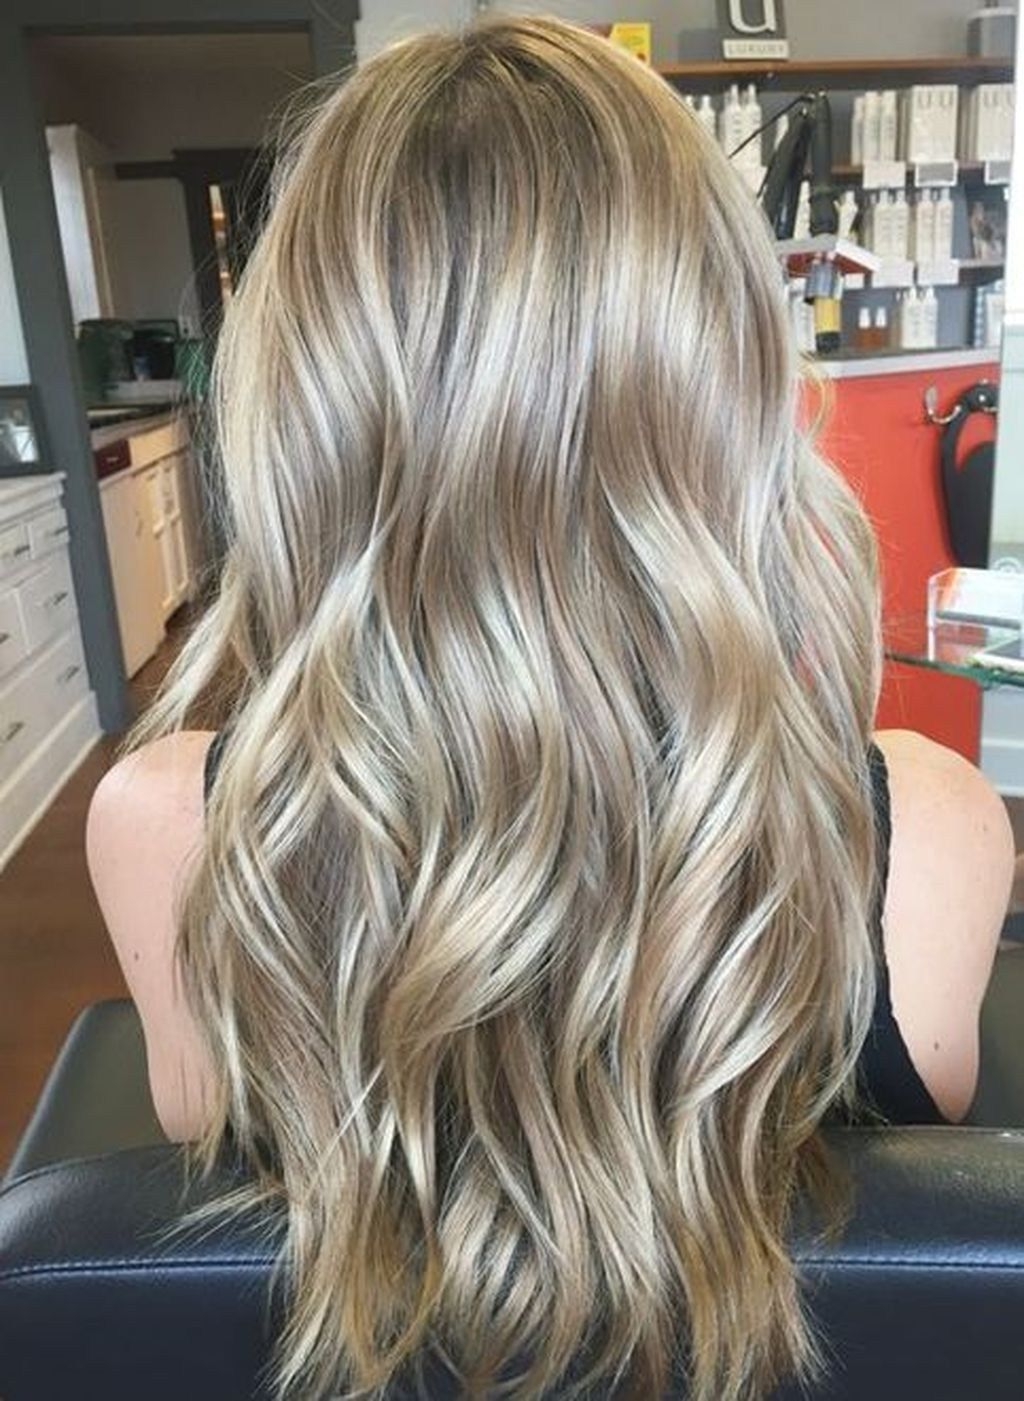 Gorgeous Spring Hair Color Ideas For Brunette 36 Cool Blonde